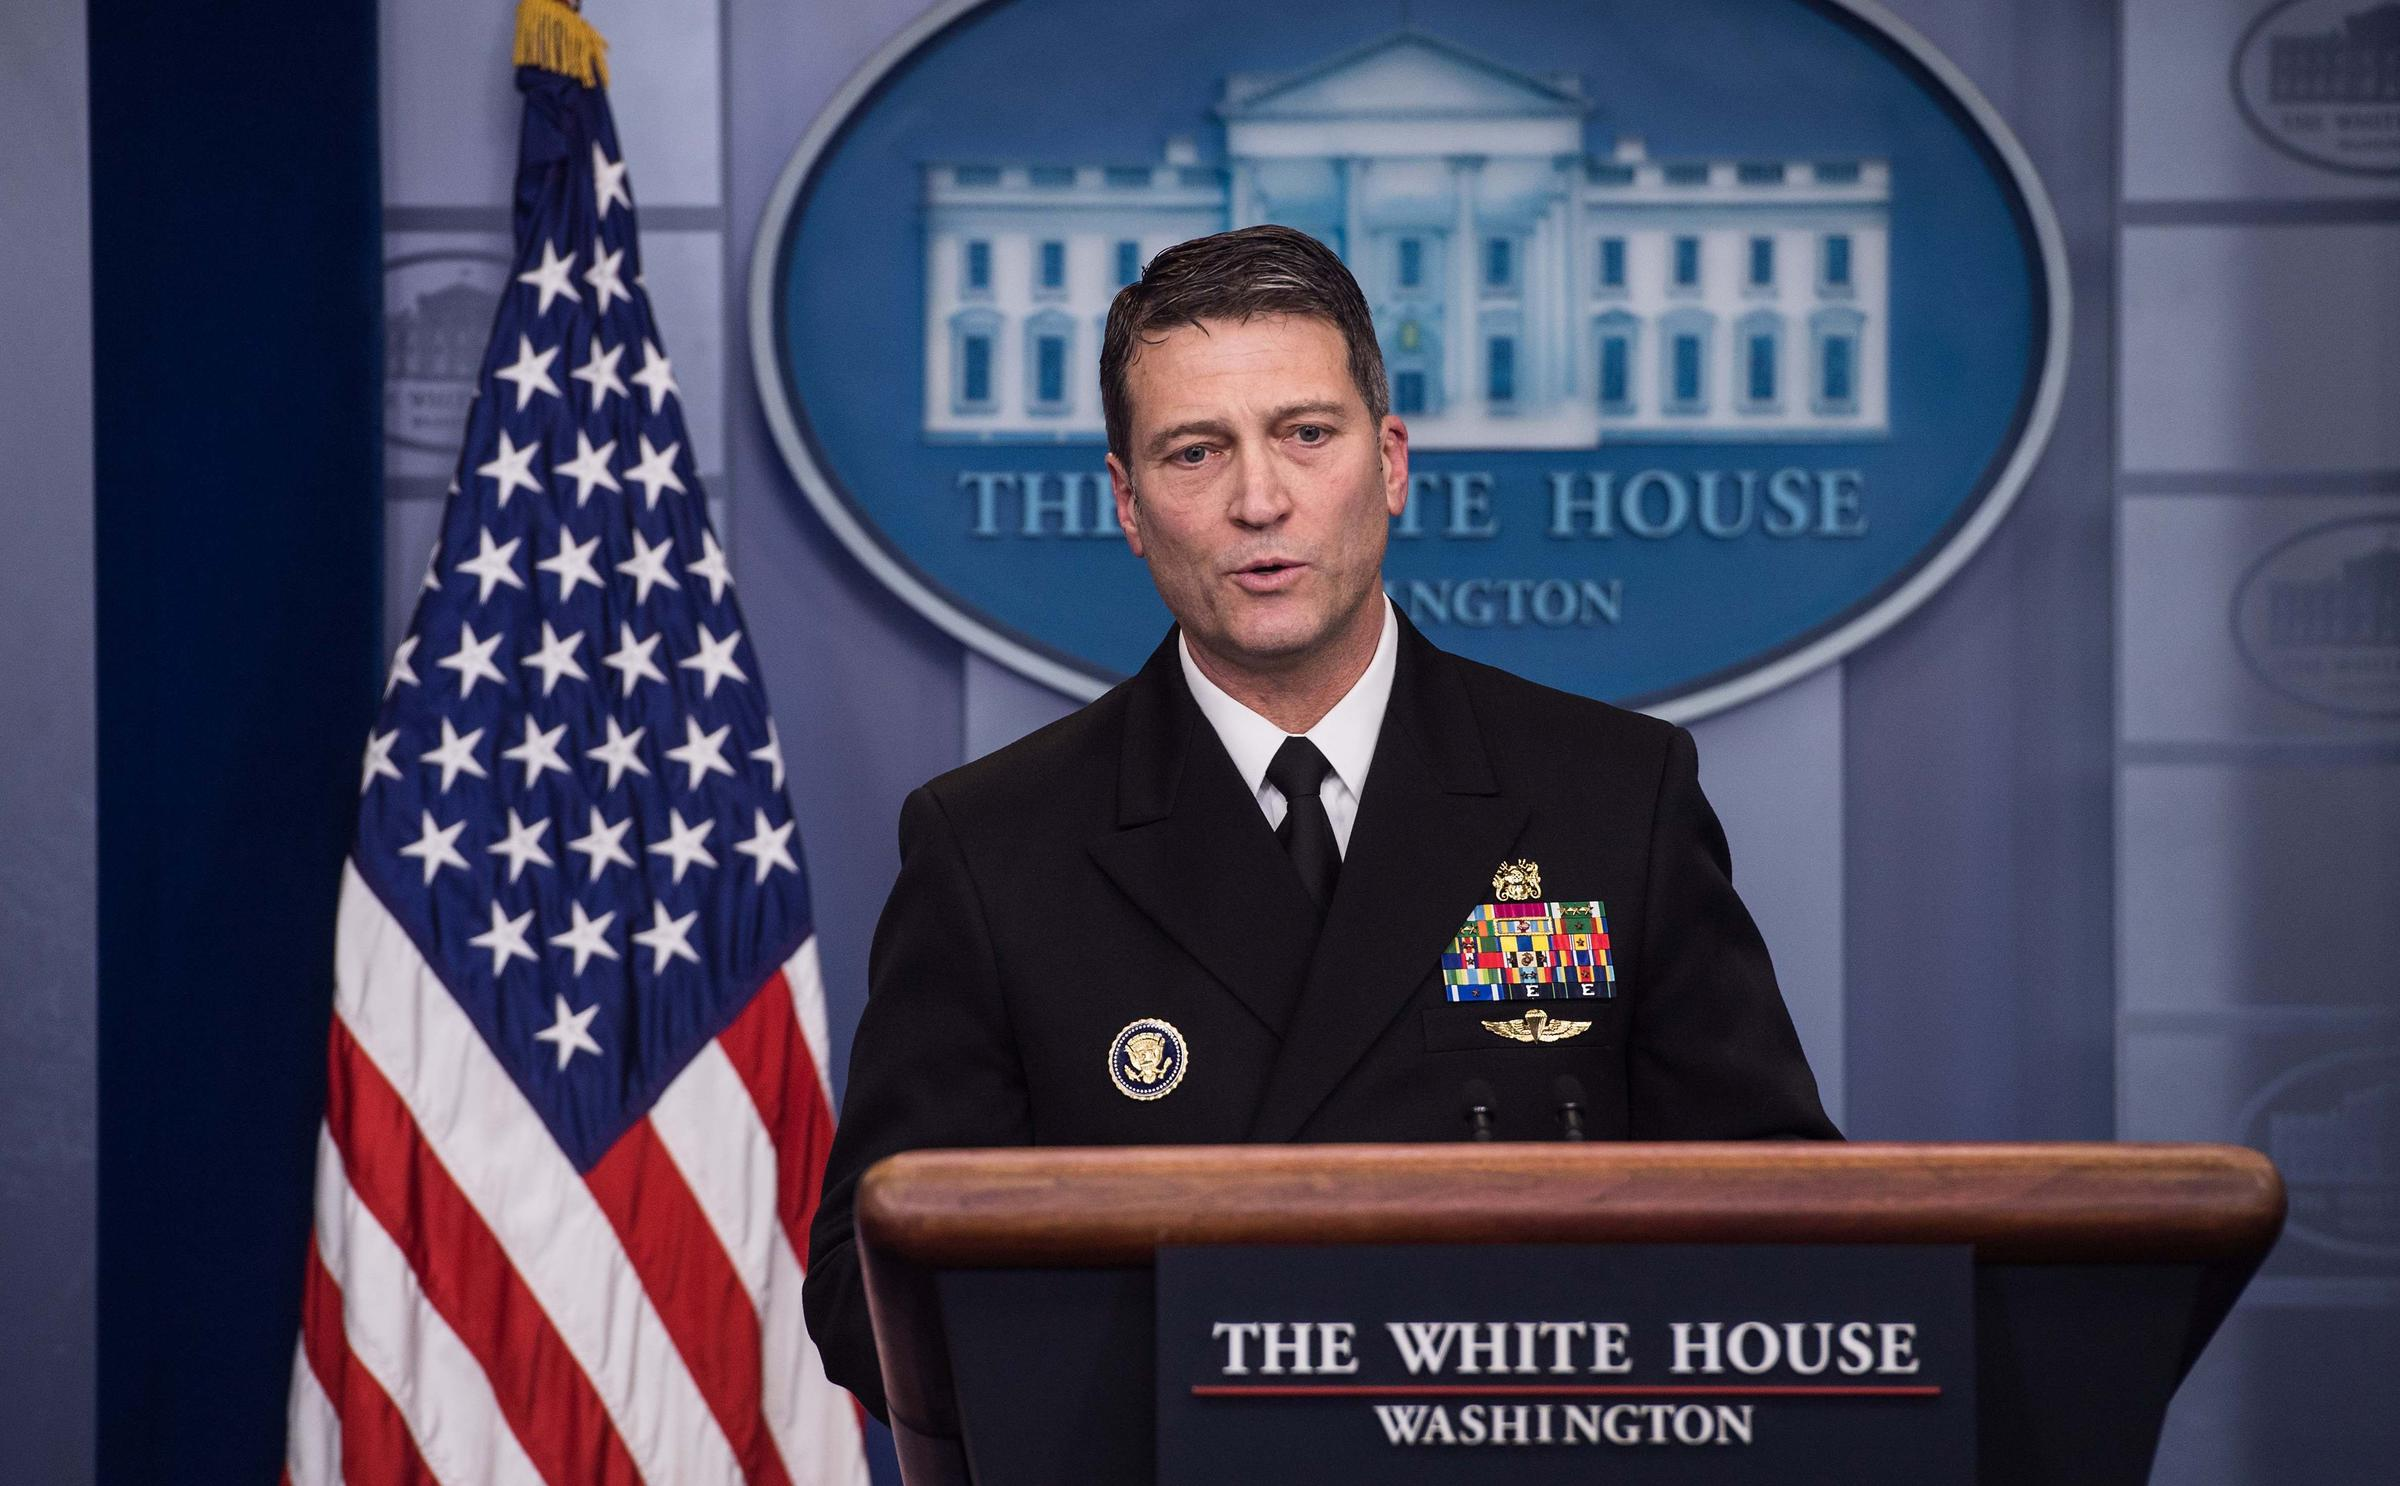 Dr. Ronny Jackson's glowing bill of health for Trump